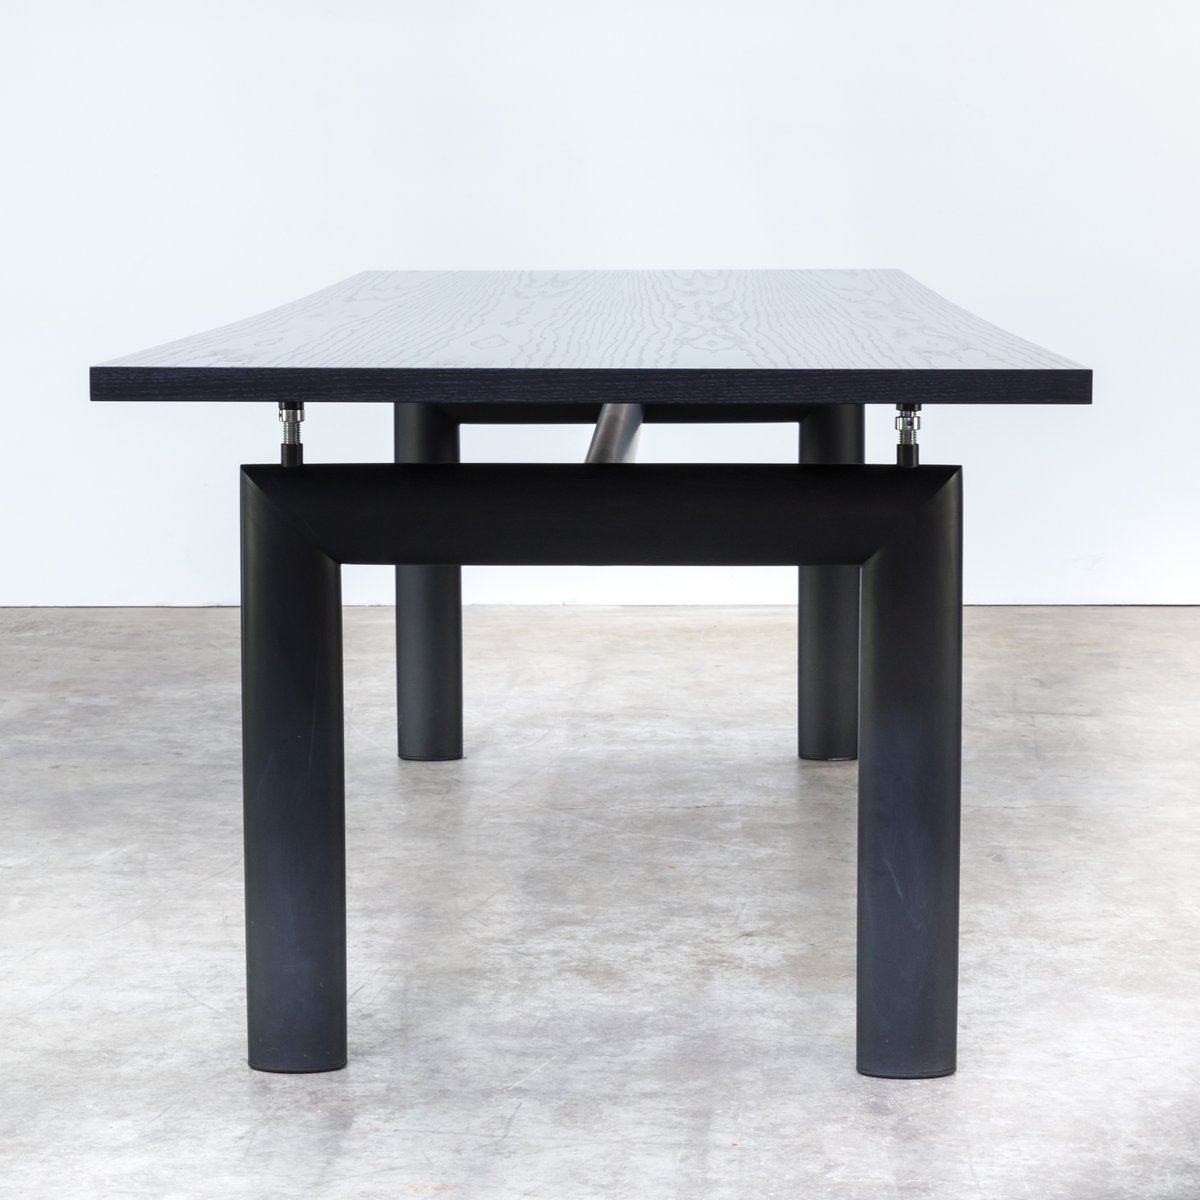 Lc6n Dining Table By Le Corbusier For Cassina 1980s For Sale At Pamono